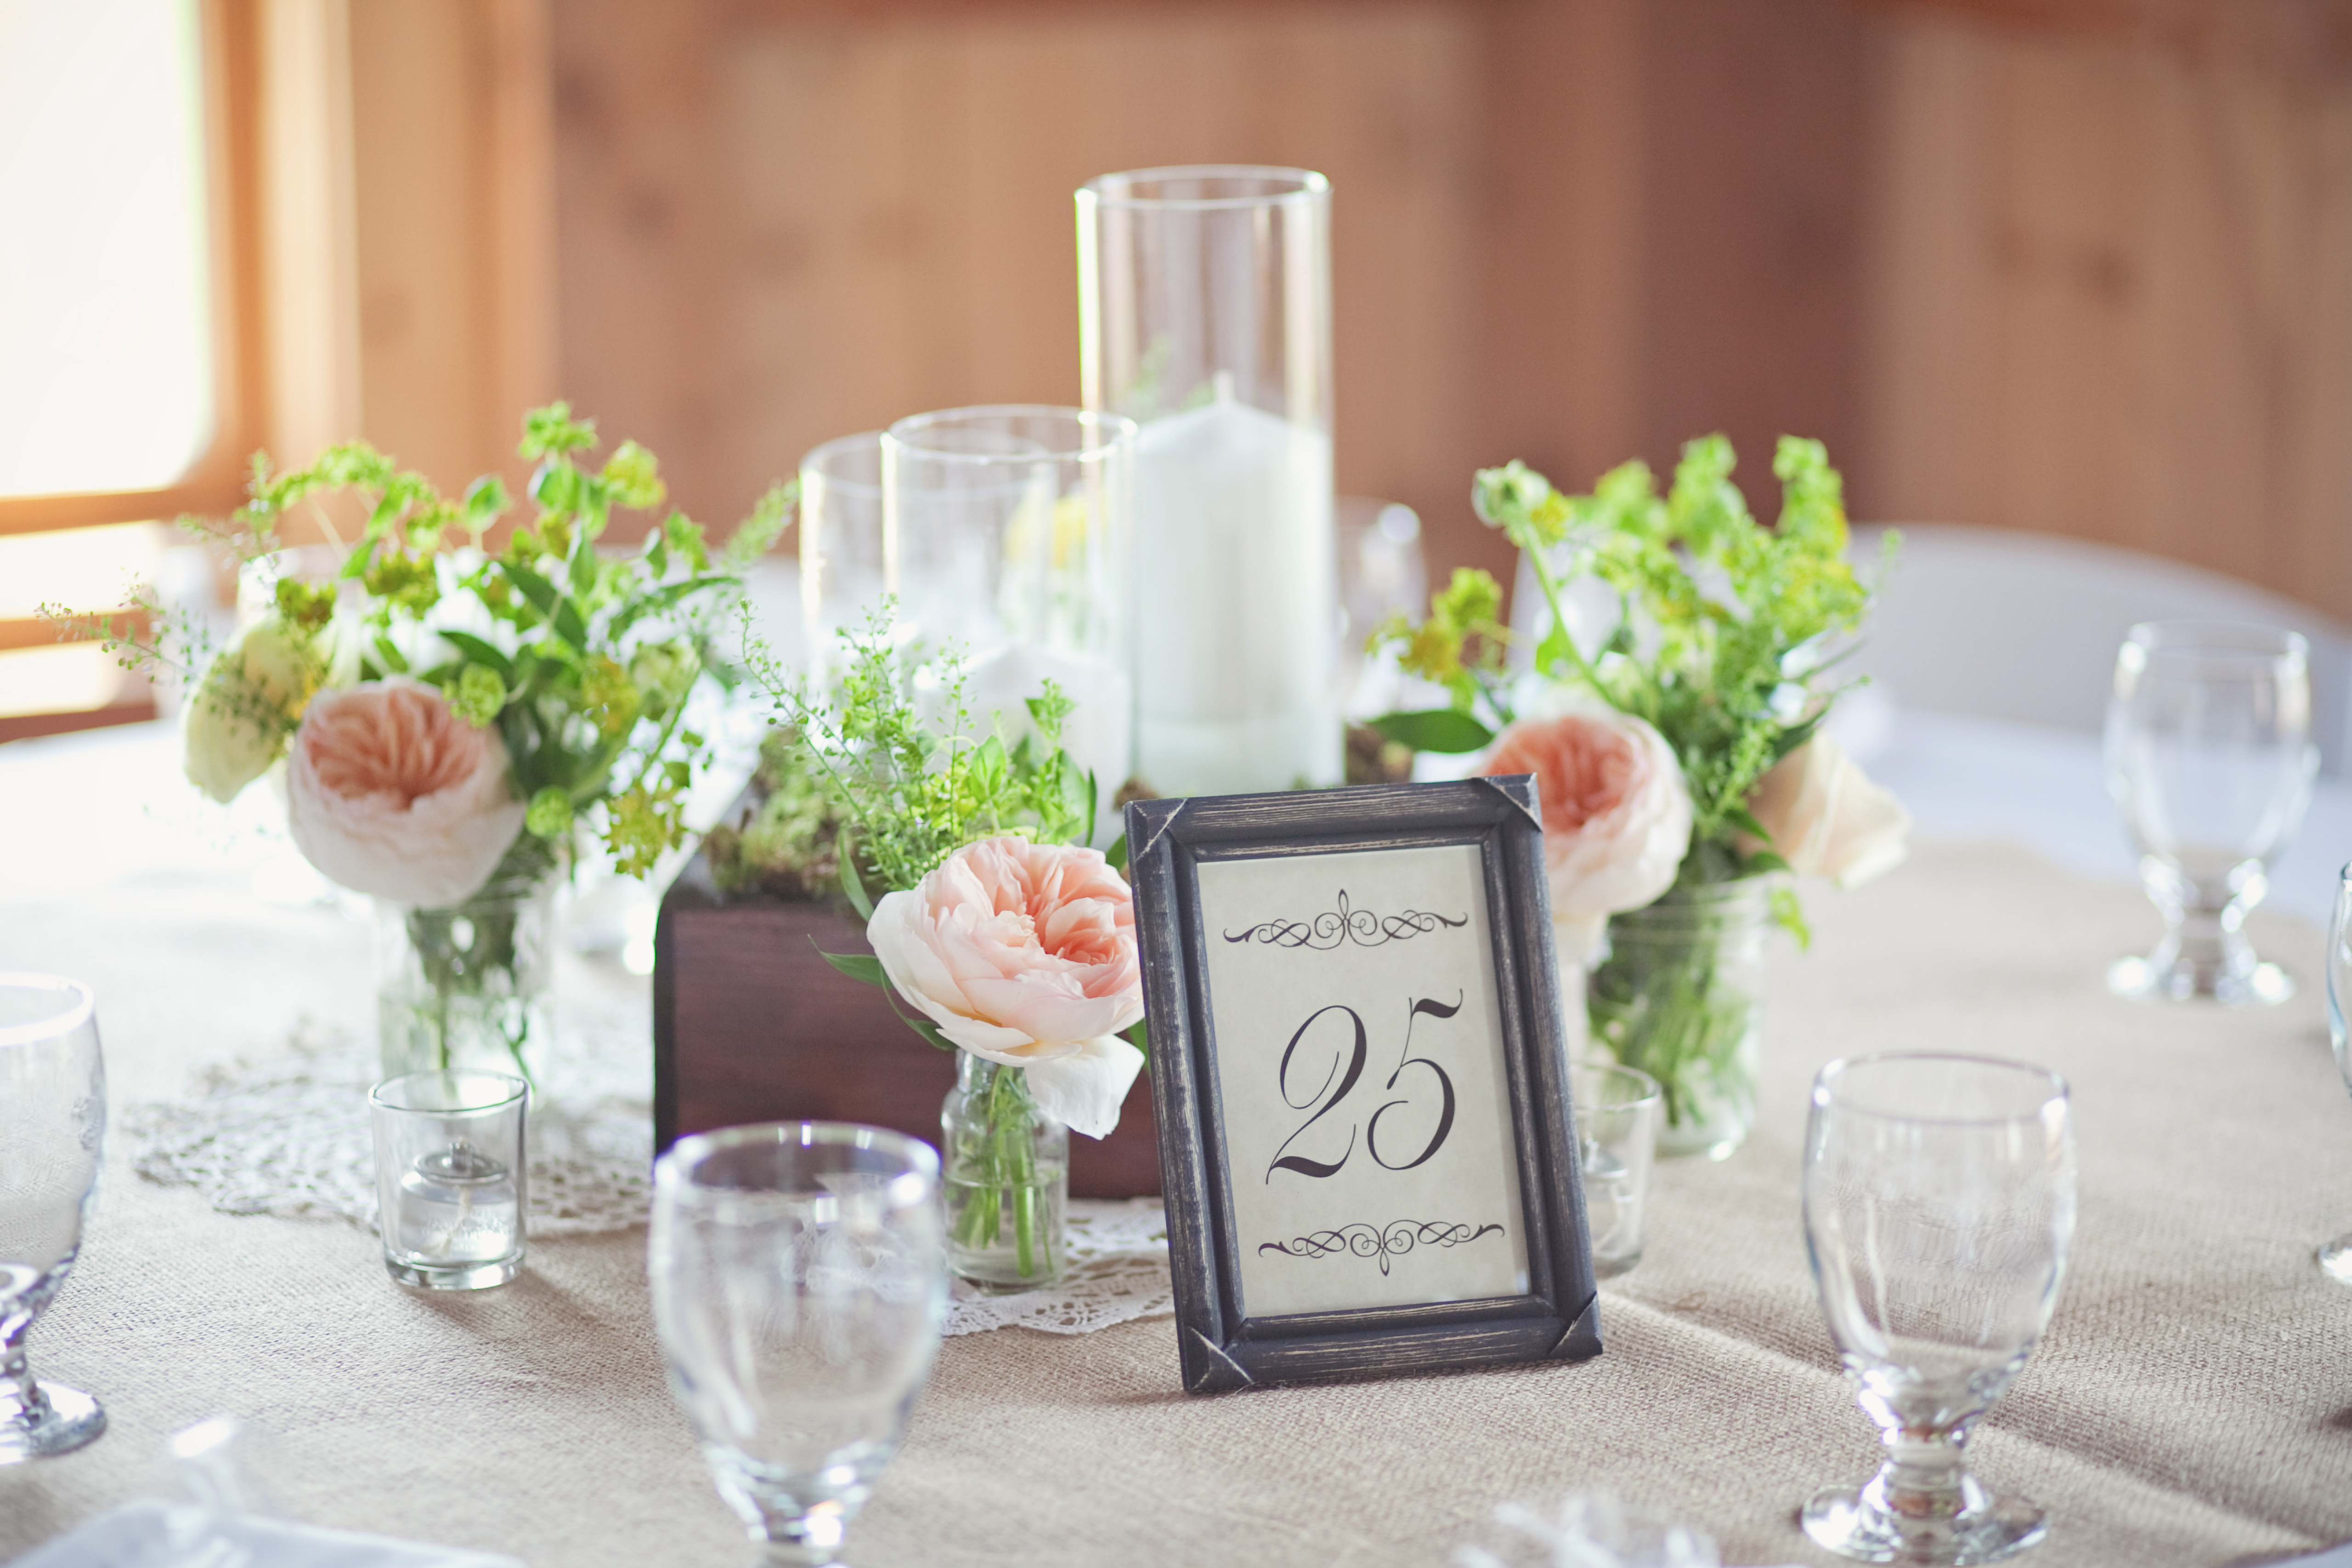 Mason jars hitched planning floral